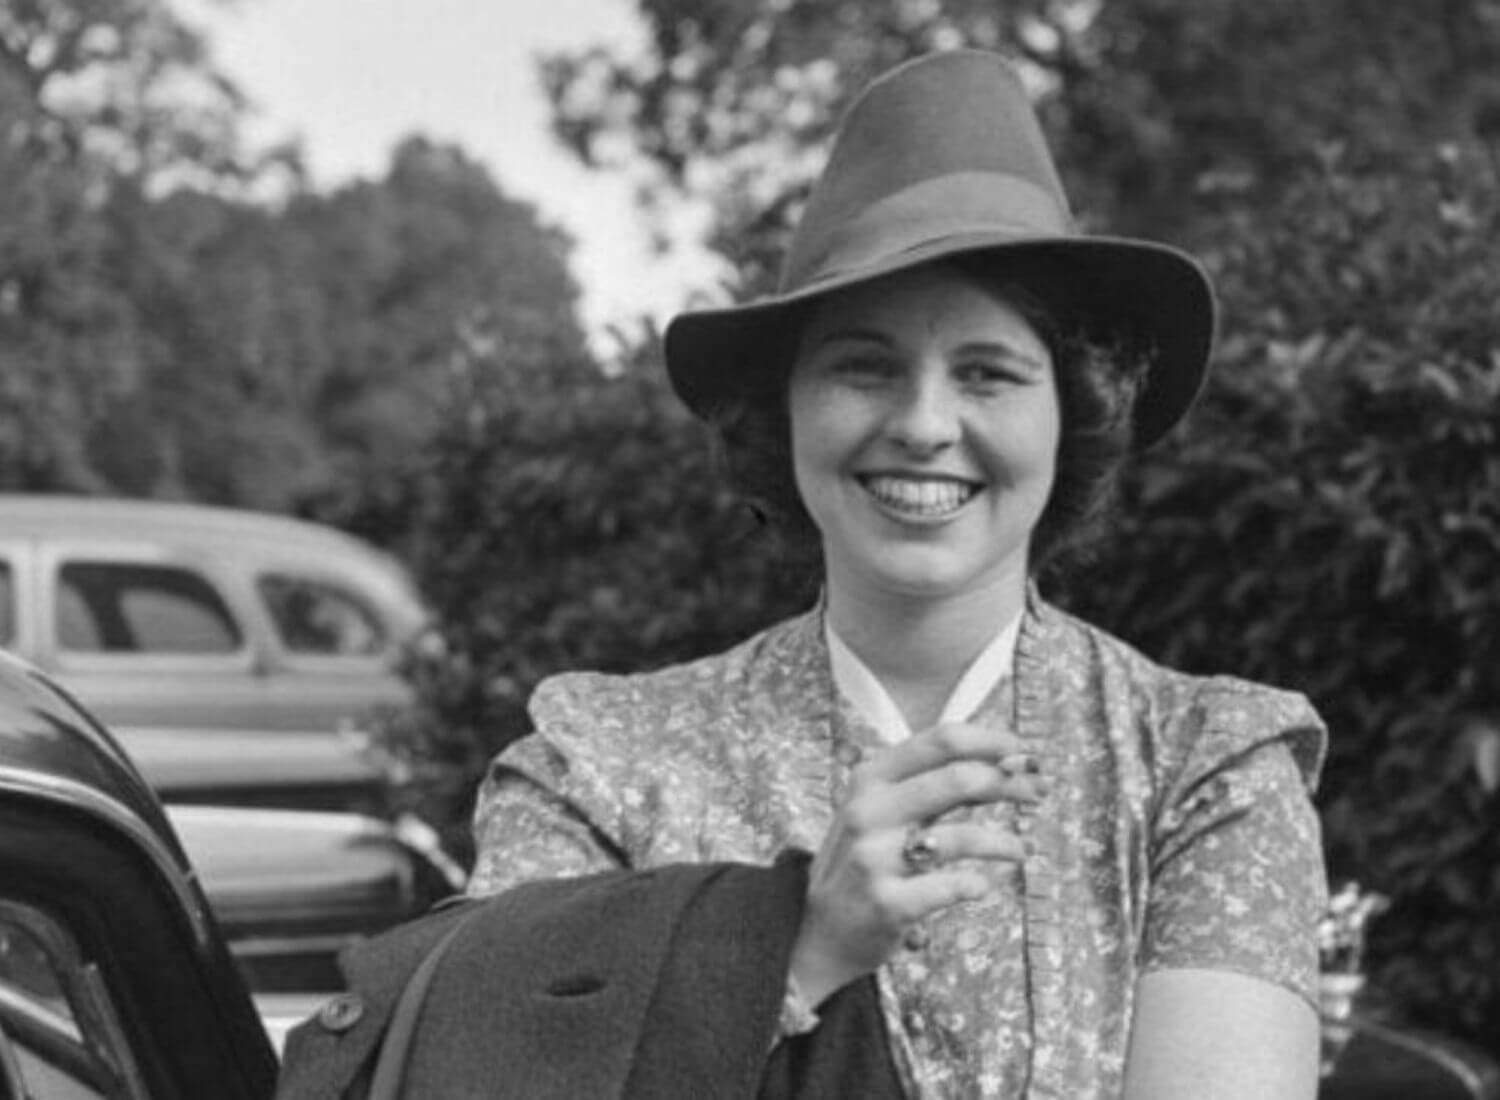 rosemary kennedy's tragedy